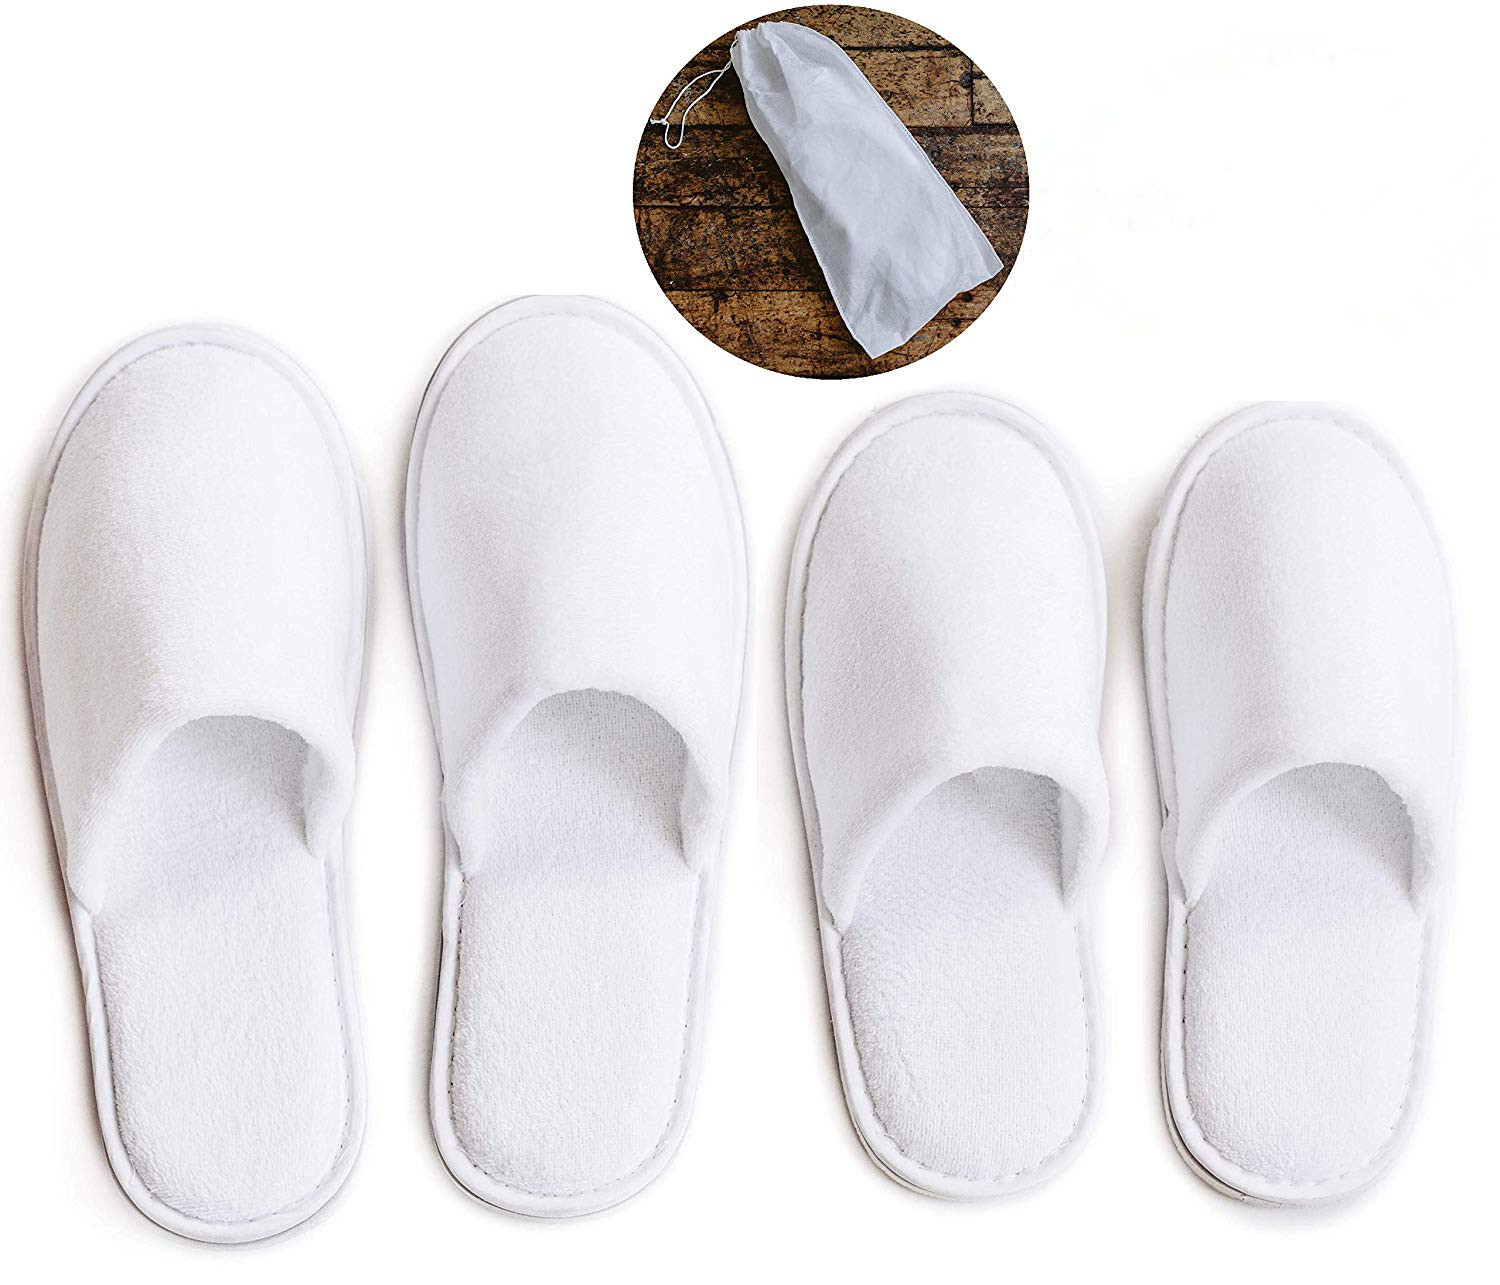 Cotton Velvet Closed Toe Slippers with draw string cloth bag